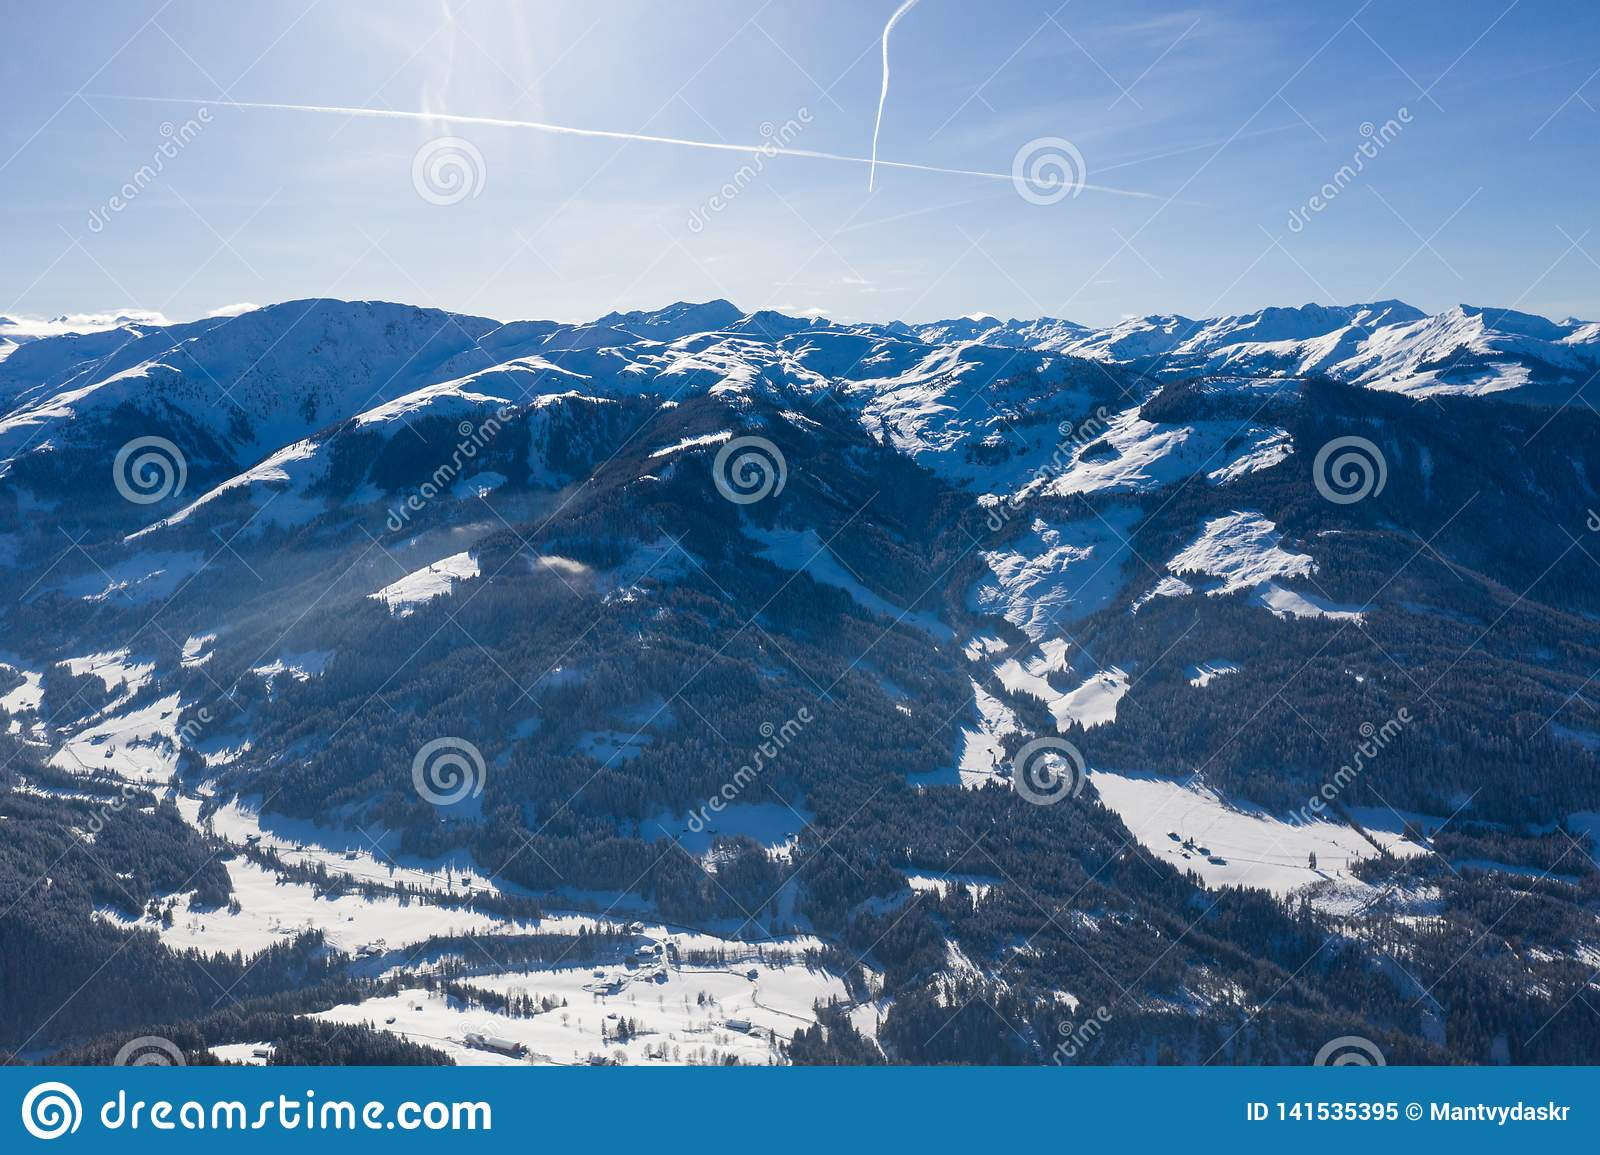 Aerial drone view of valley covered in snow in between mountains